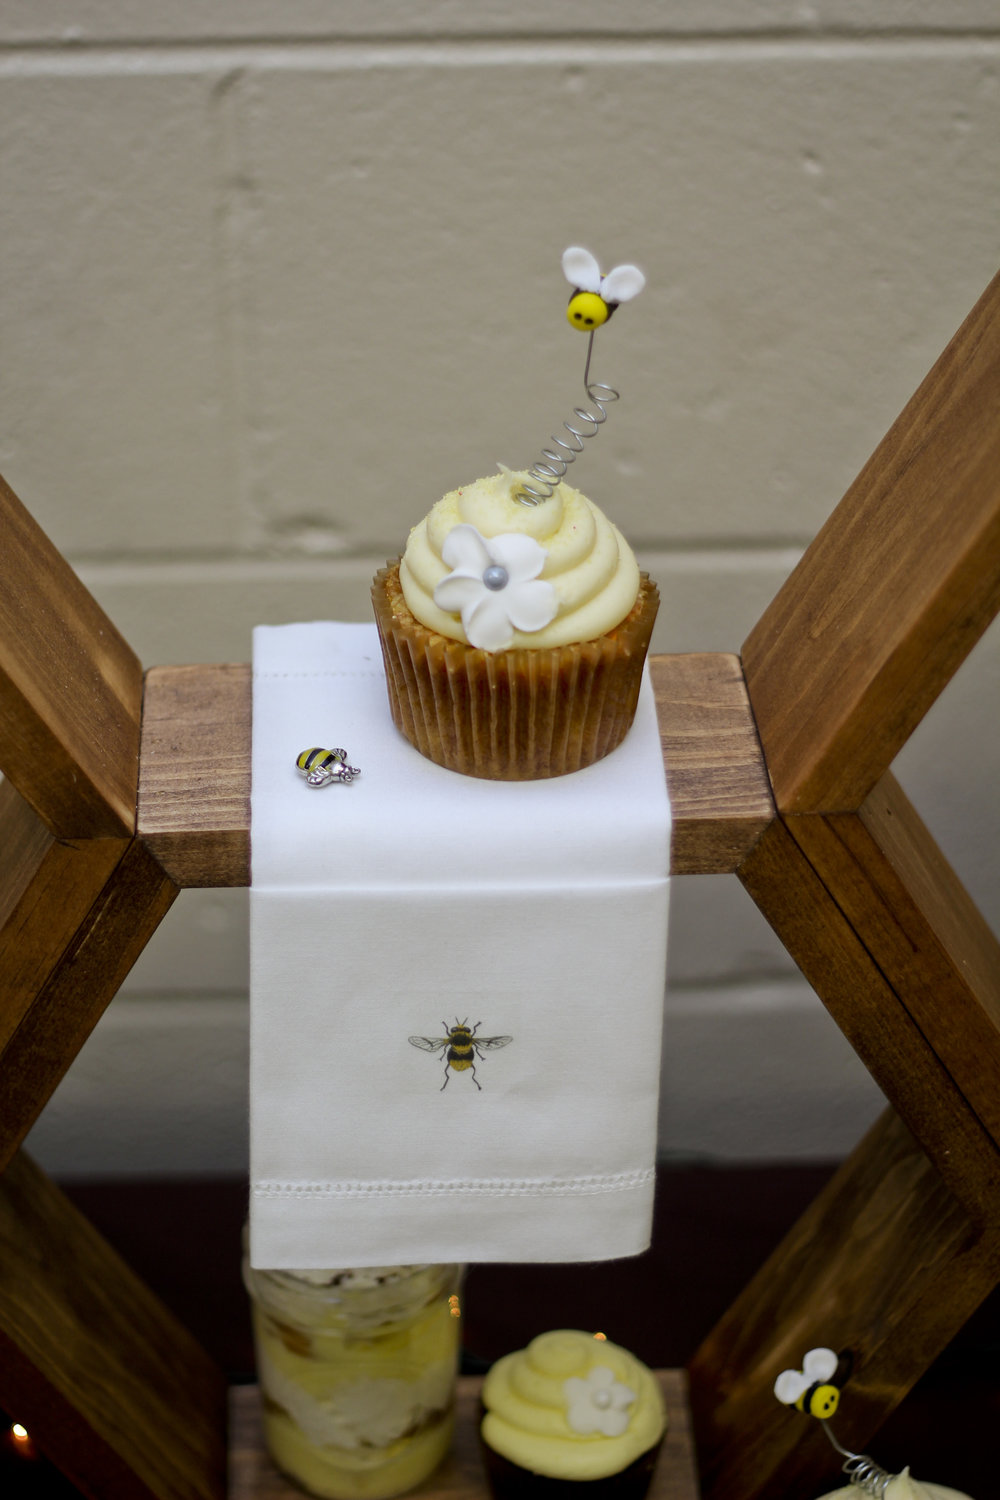 Vanilla cupcake for a pooh bear themed baby shower. Vanilla cake with buttercream icing decorated with succulents and a flower and a fondant bumblebee.